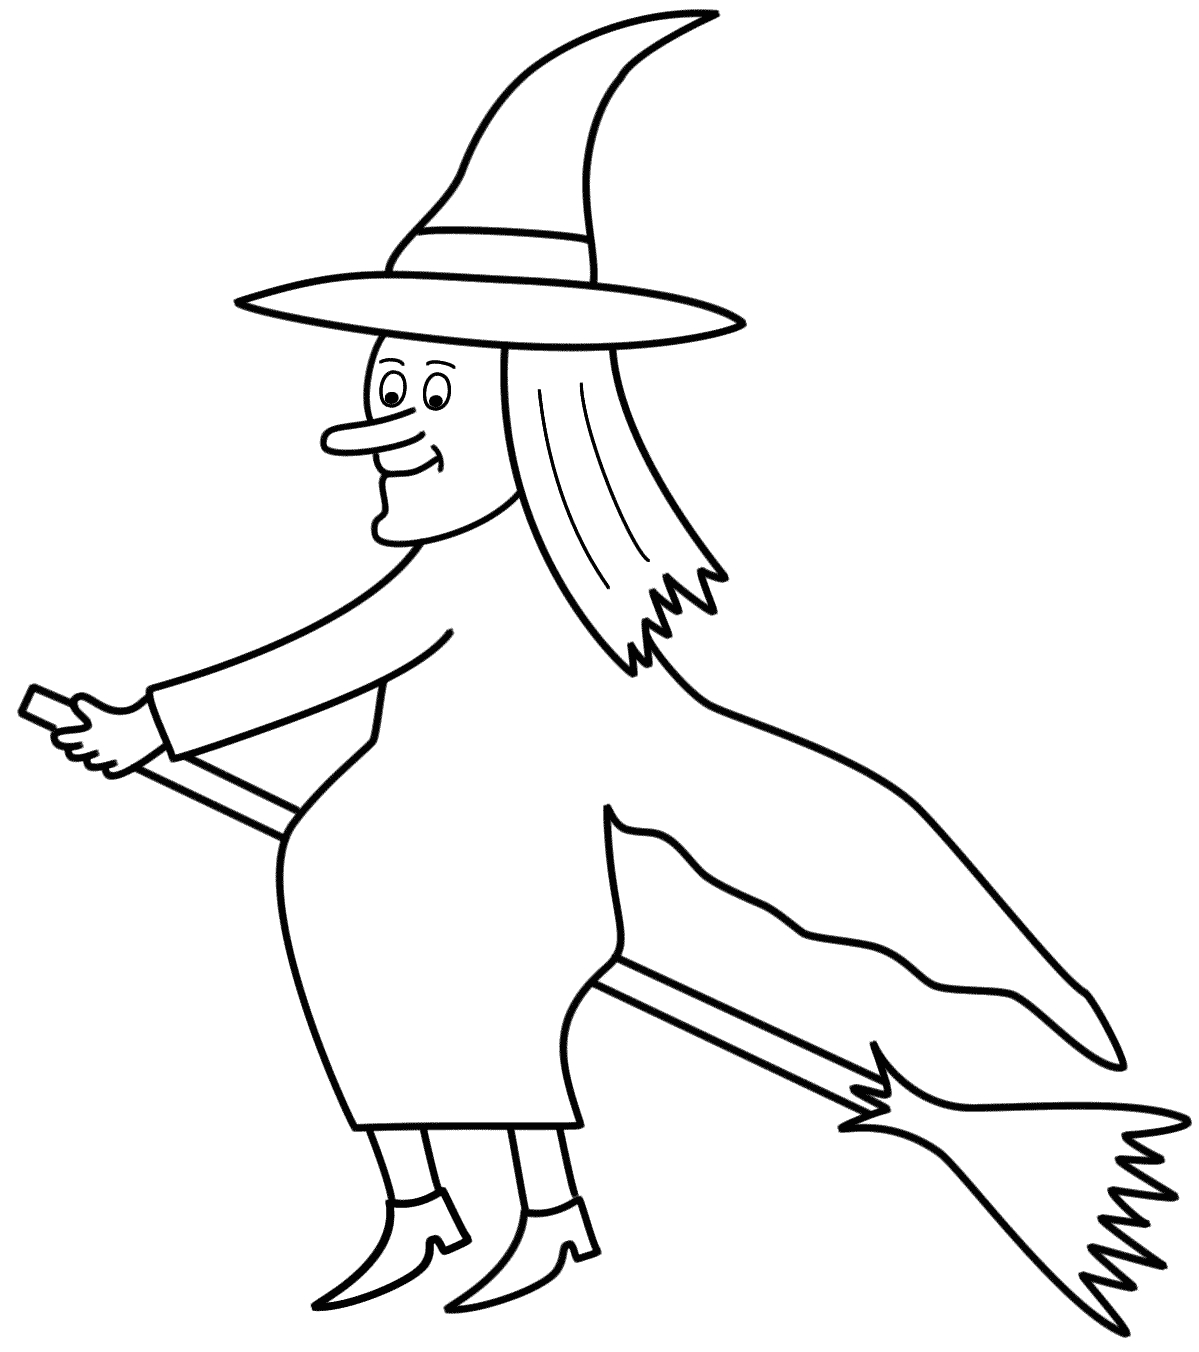 Coloring Pages Of Witches On A Broom Coloring Pages Witches A Broom Coloring Home